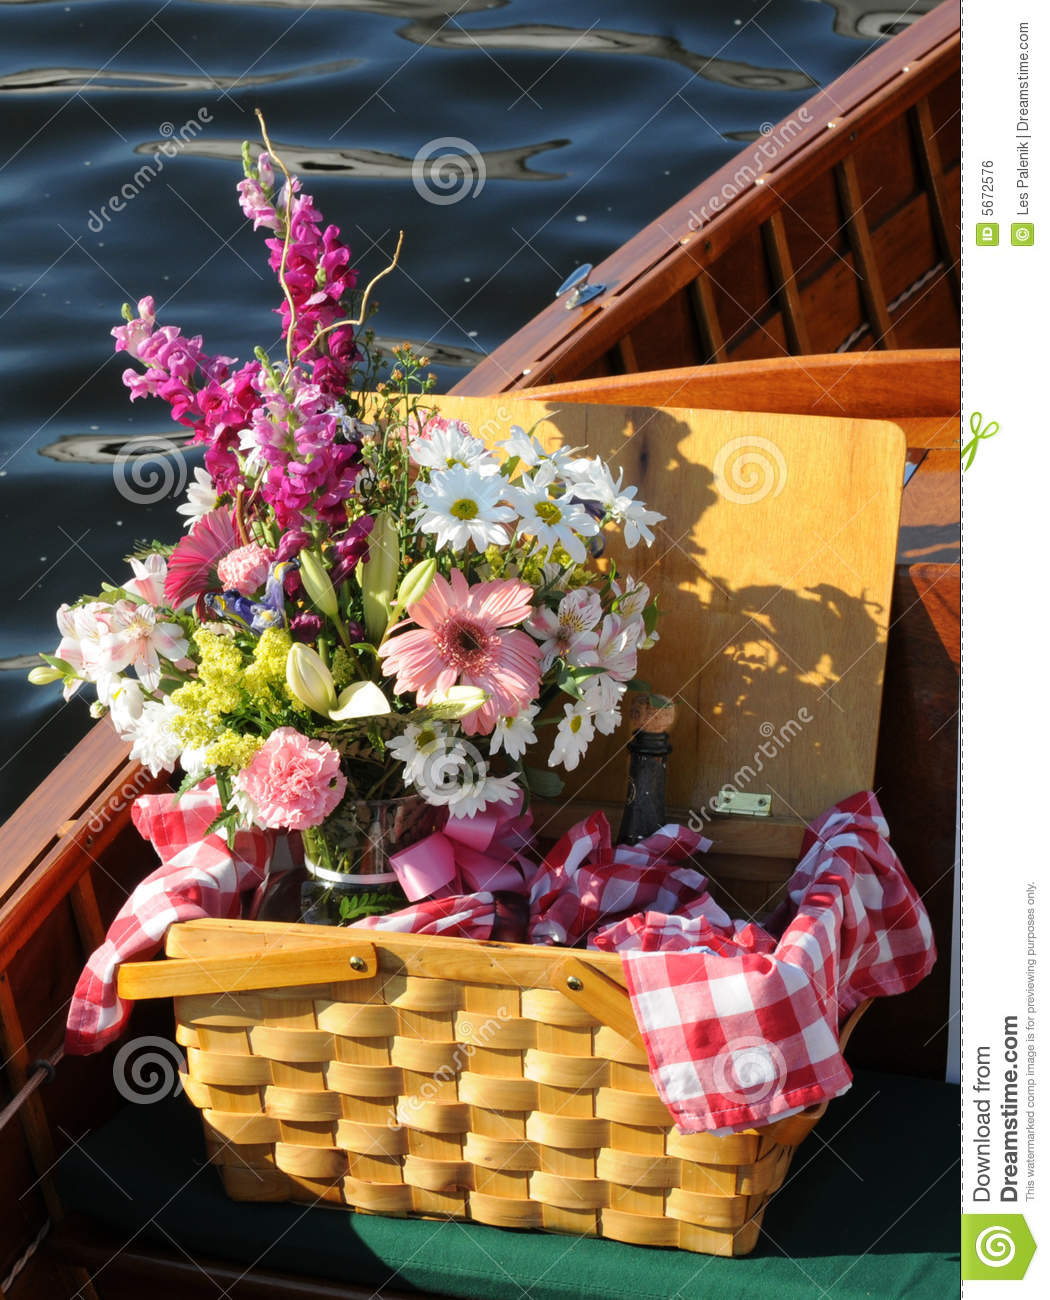 Picnic Basket With Flowers On A Wooden Boat Stock Photo Image Of Case Water 5672576